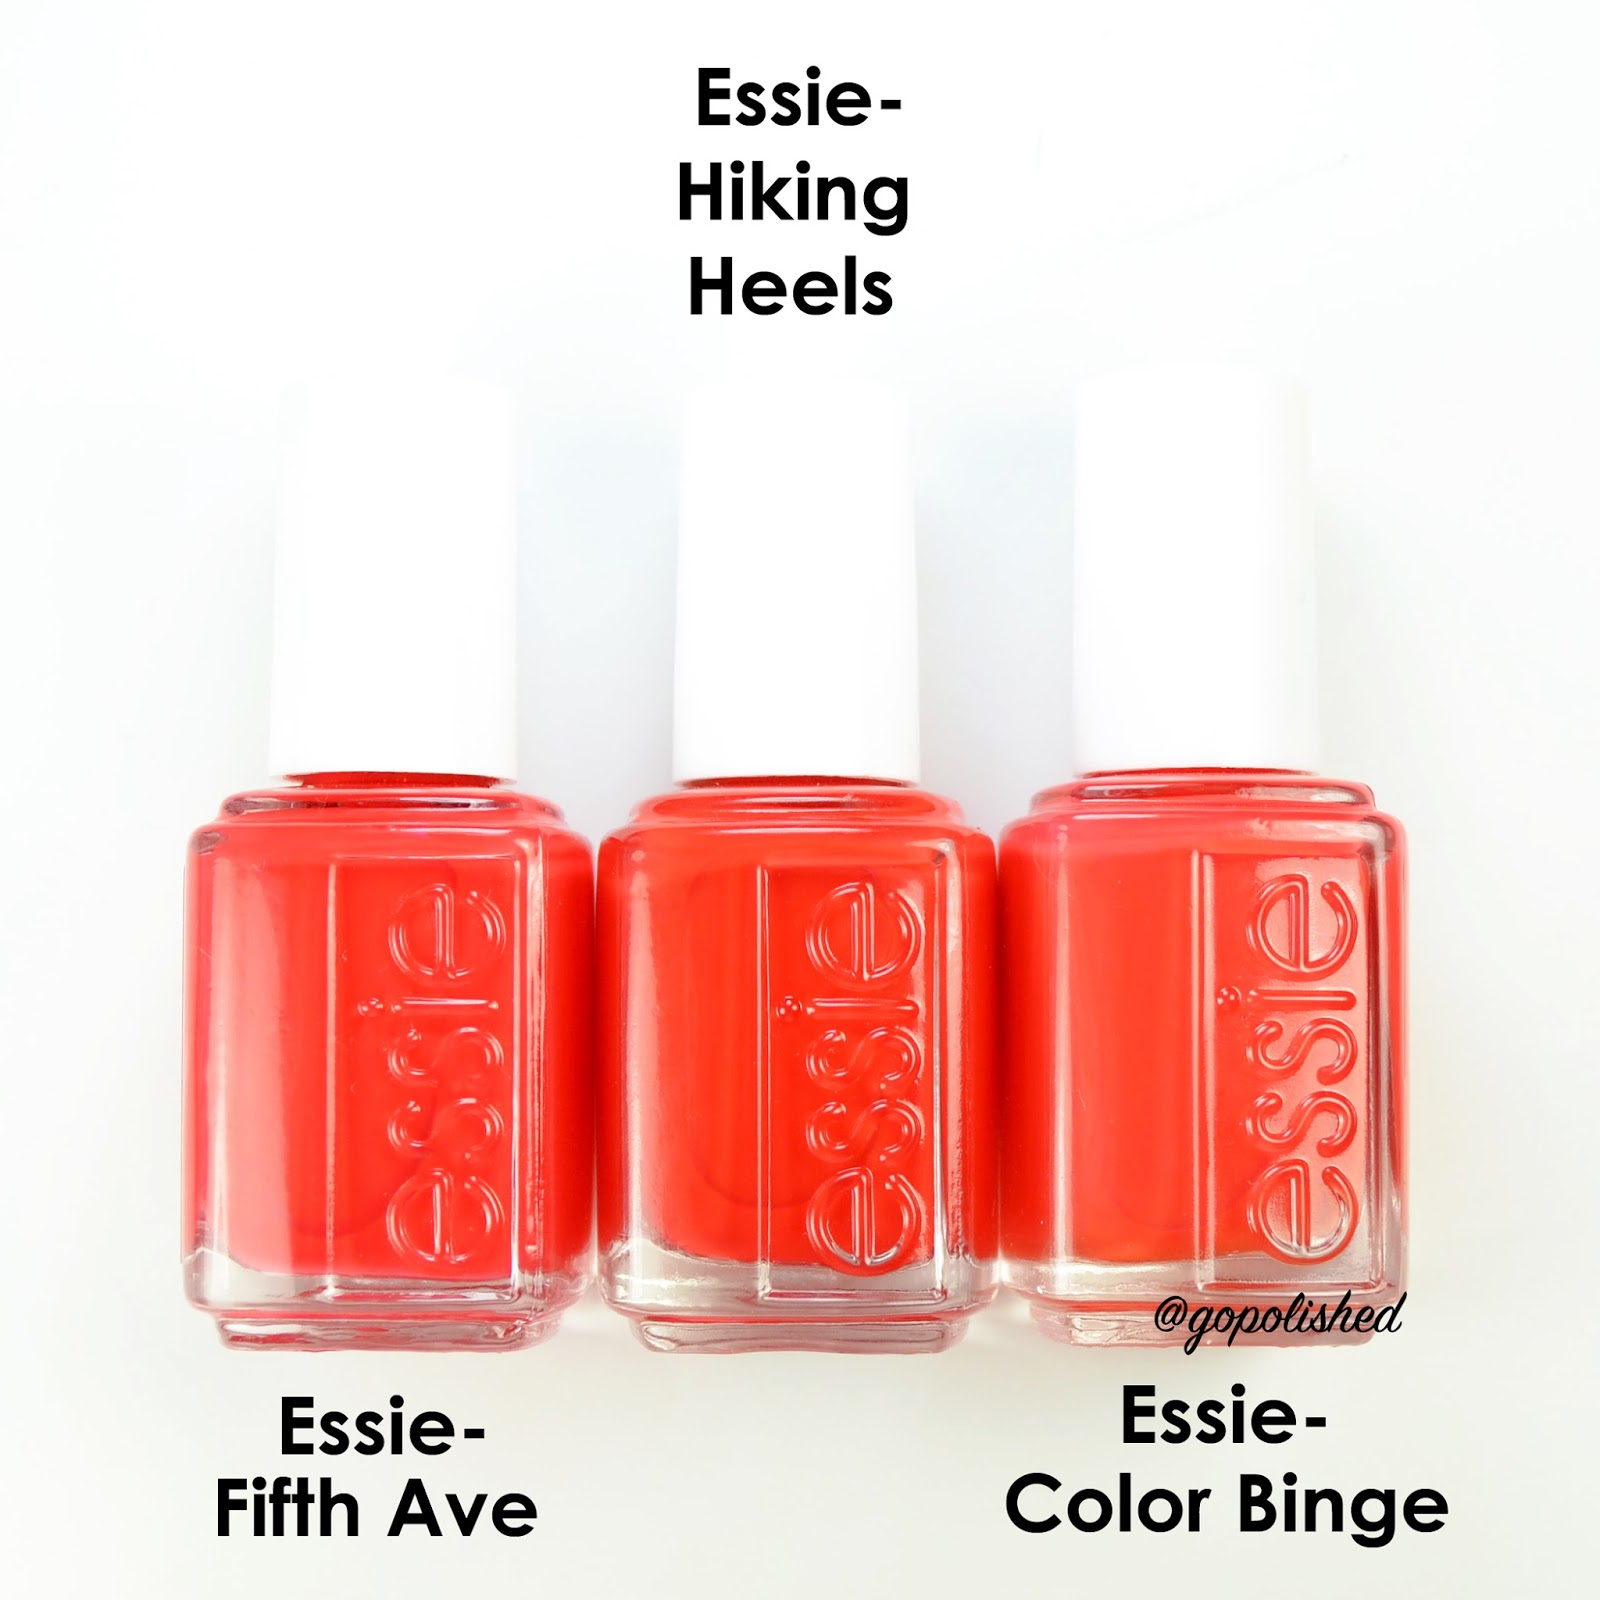 Essie Nail Colors Summer 2016 | Splendid Wedding Company